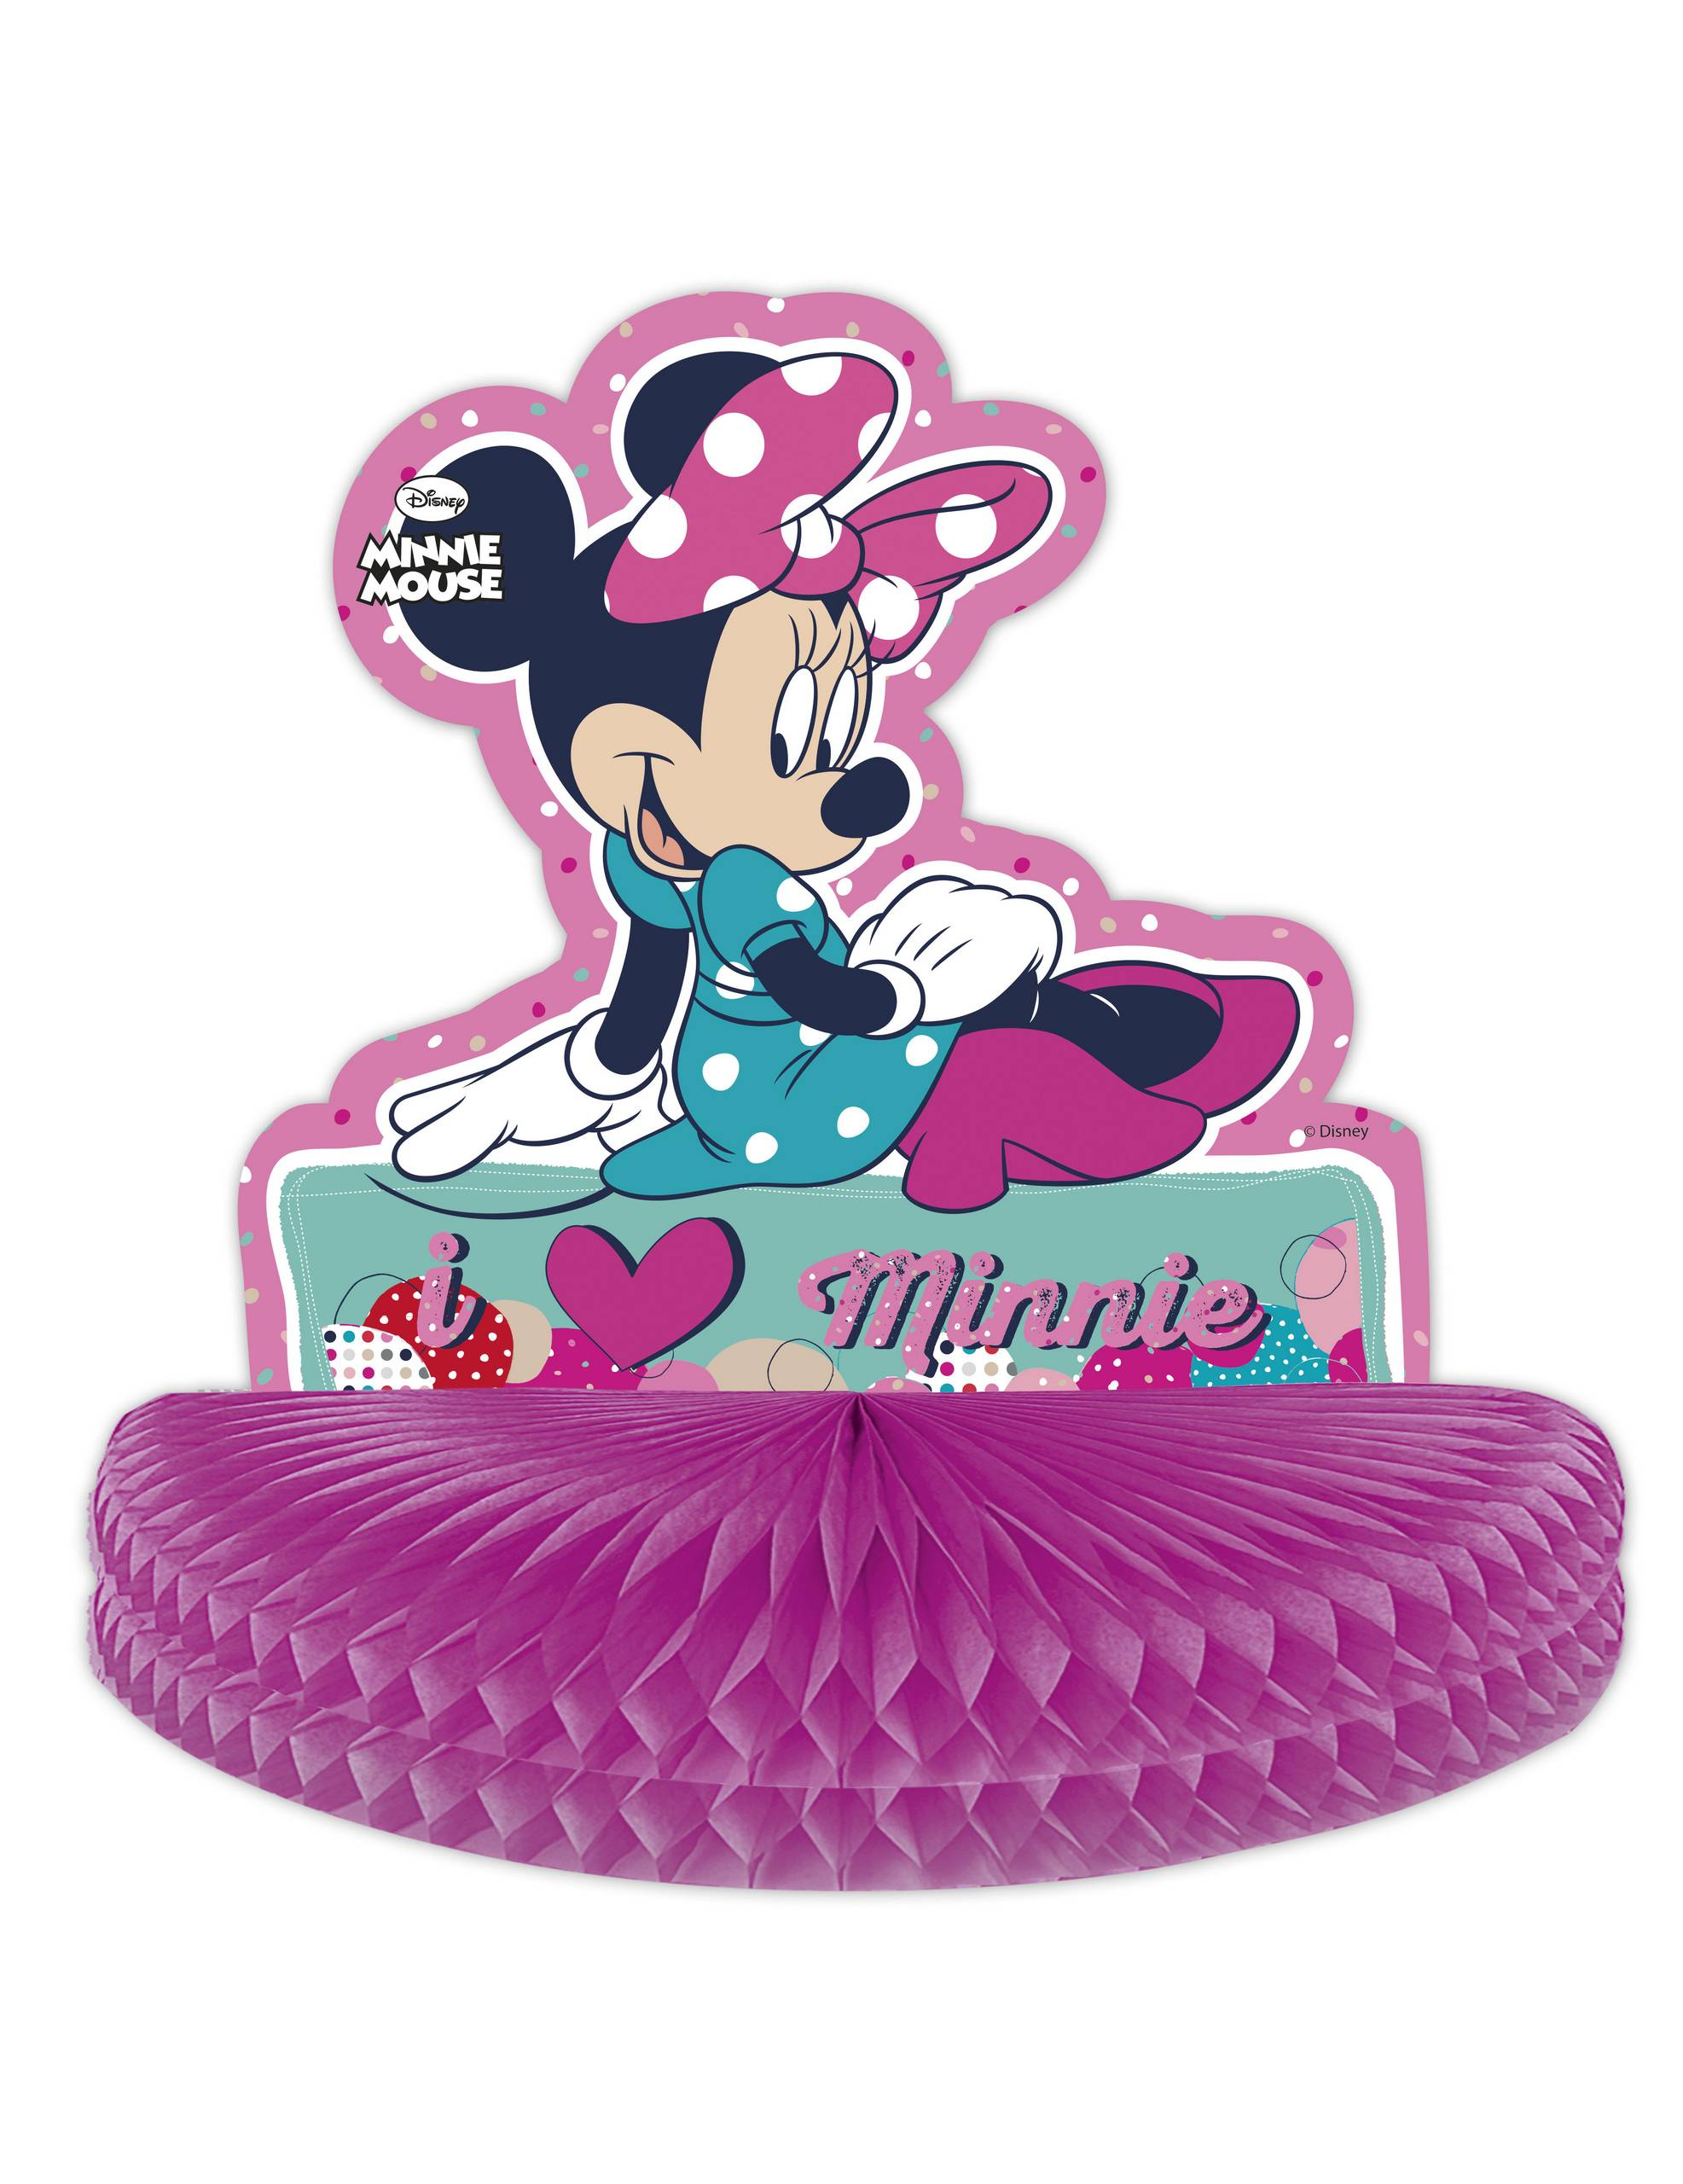 centre de table minnie mouse d coration anniversaire et f tes th me sur vegaoo party. Black Bedroom Furniture Sets. Home Design Ideas